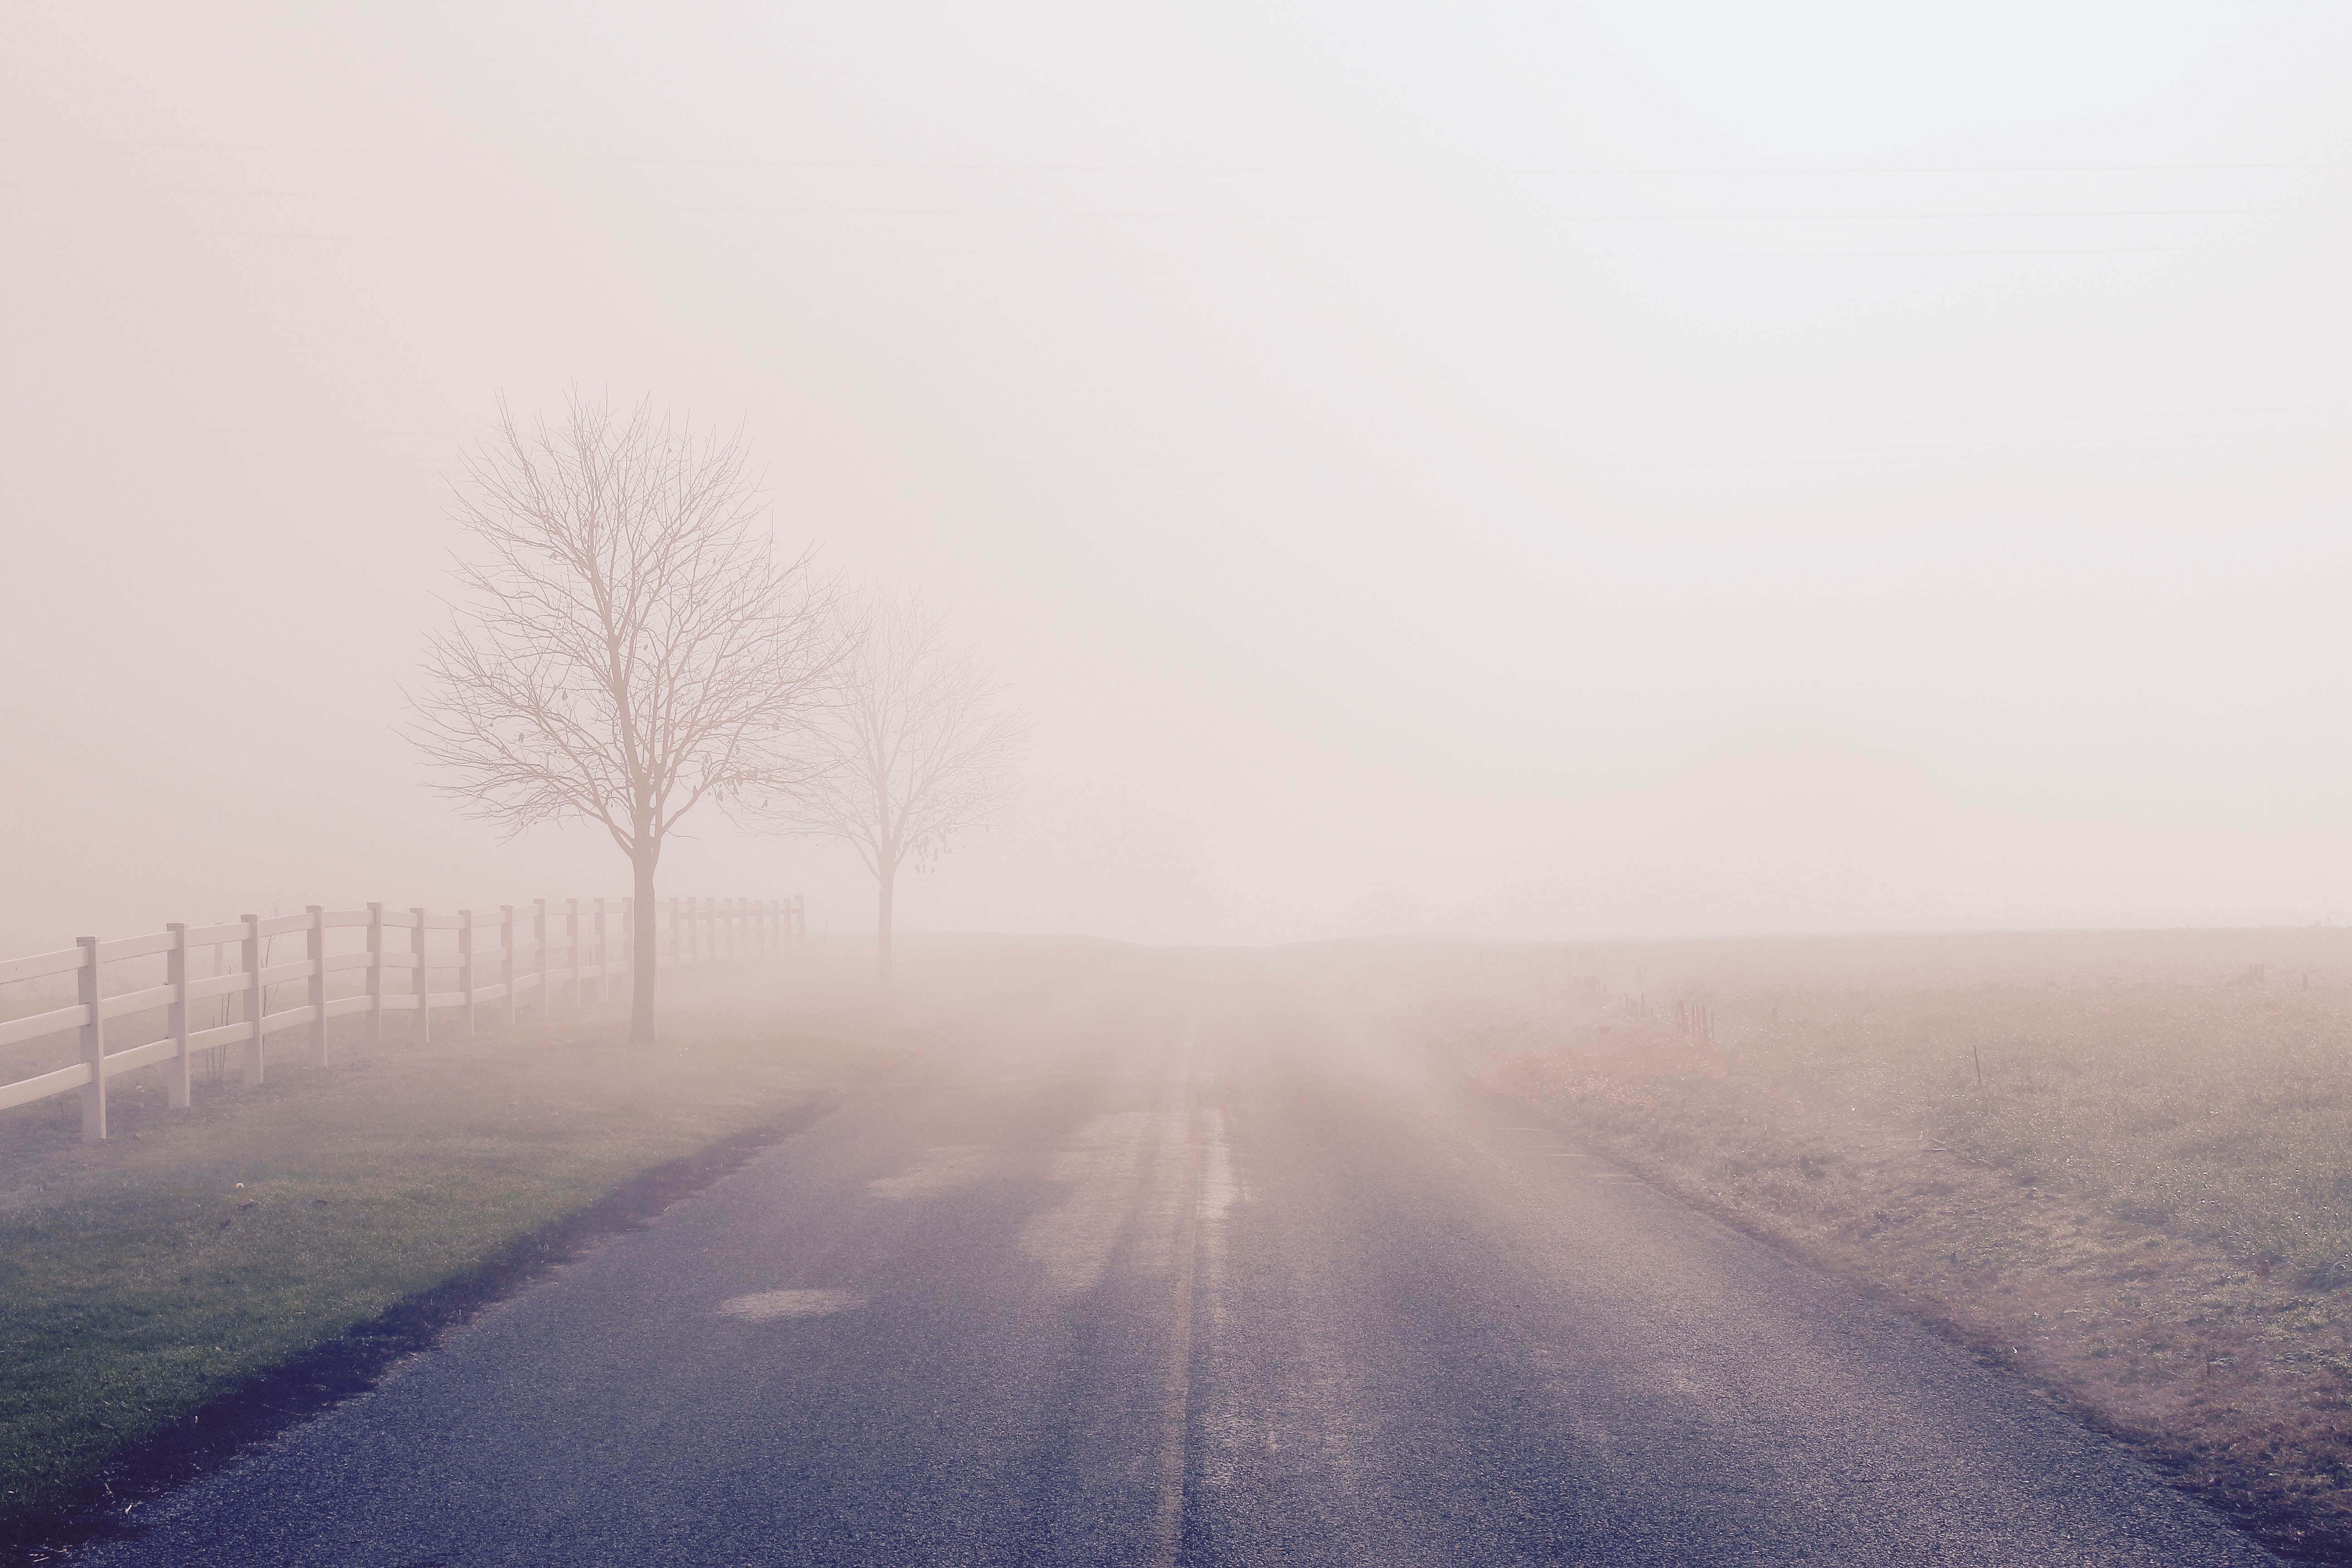 foggy road with bare trees